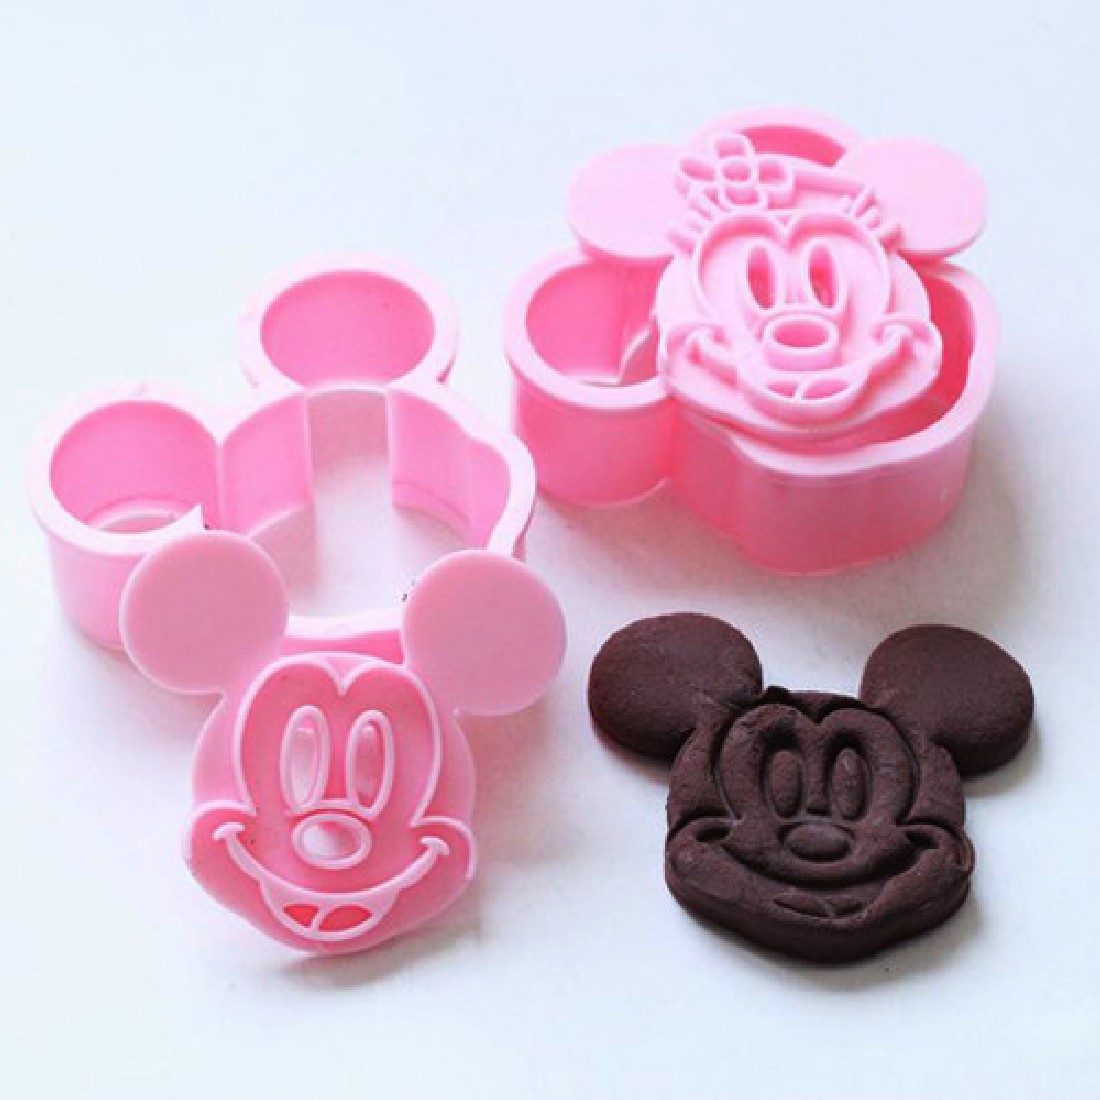 Whole Sale Mickey/Minnie Fondant Cake Cookie Decorating Sugarcraft Mold Plunger Cutter 2pcs